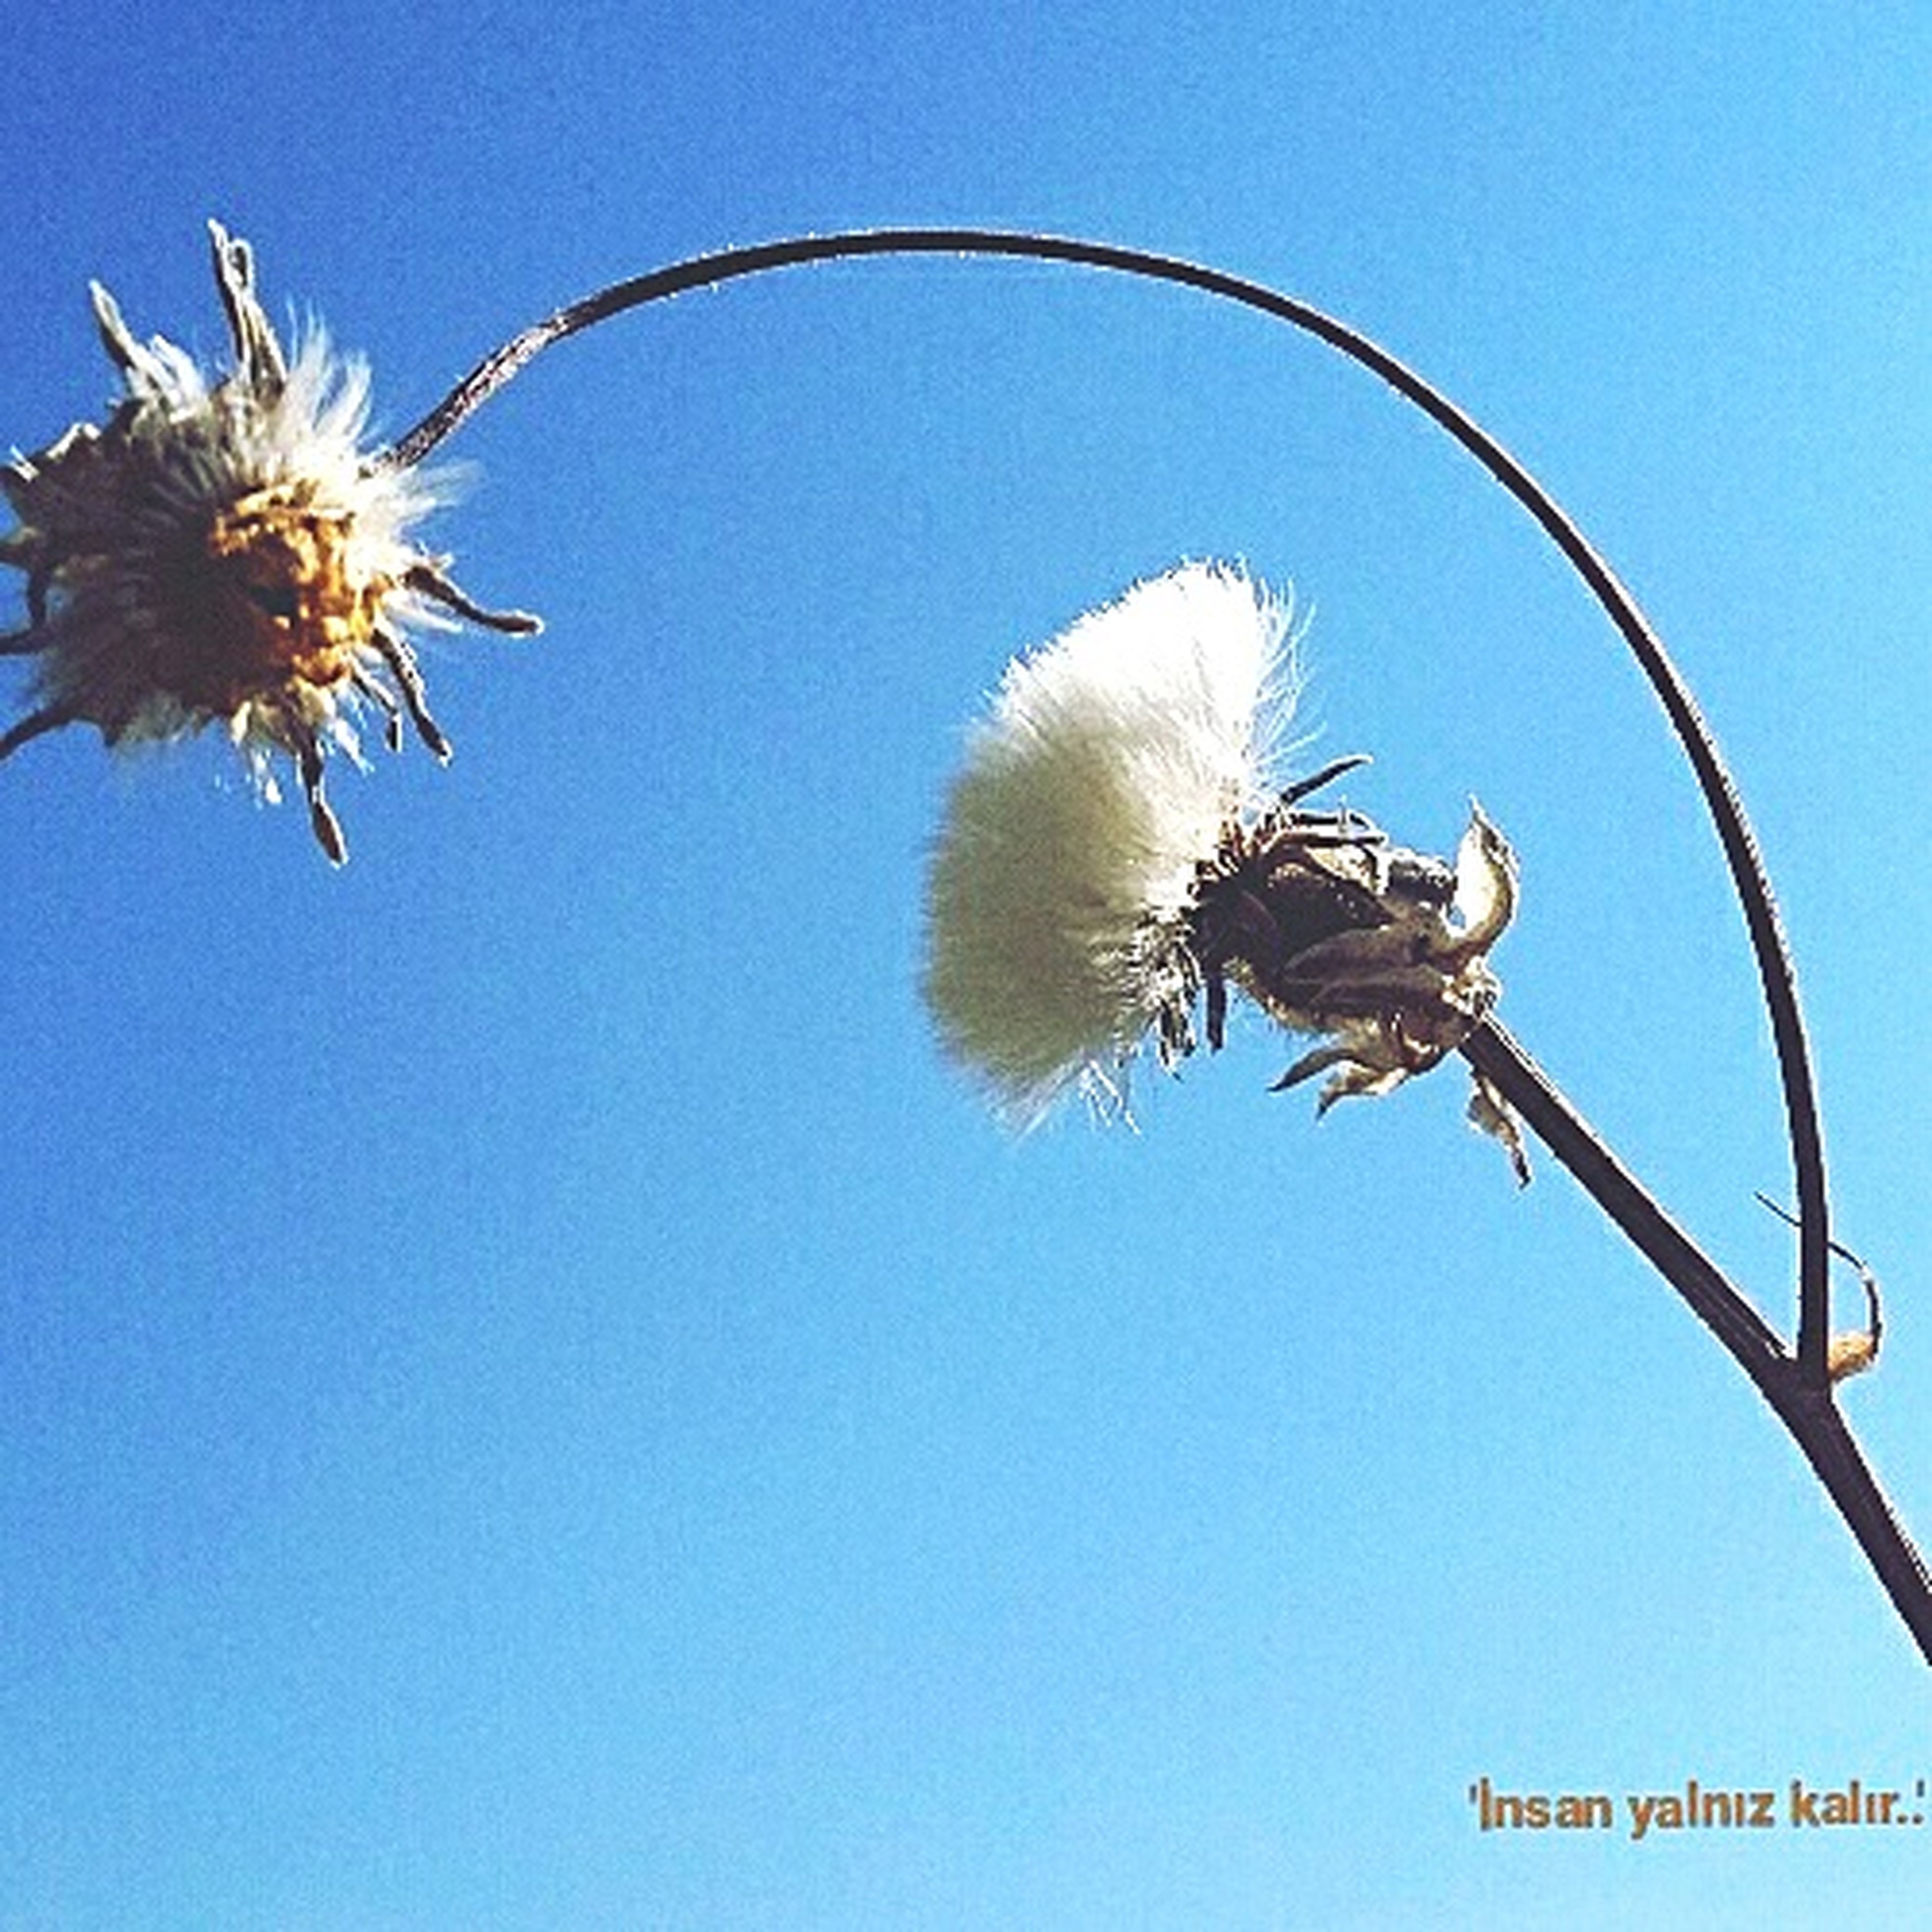 flower, clear sky, day, nature, low angle view, outdoors, blue, growth, fragility, no people, beauty in nature, flower head, close-up, freshness, sky